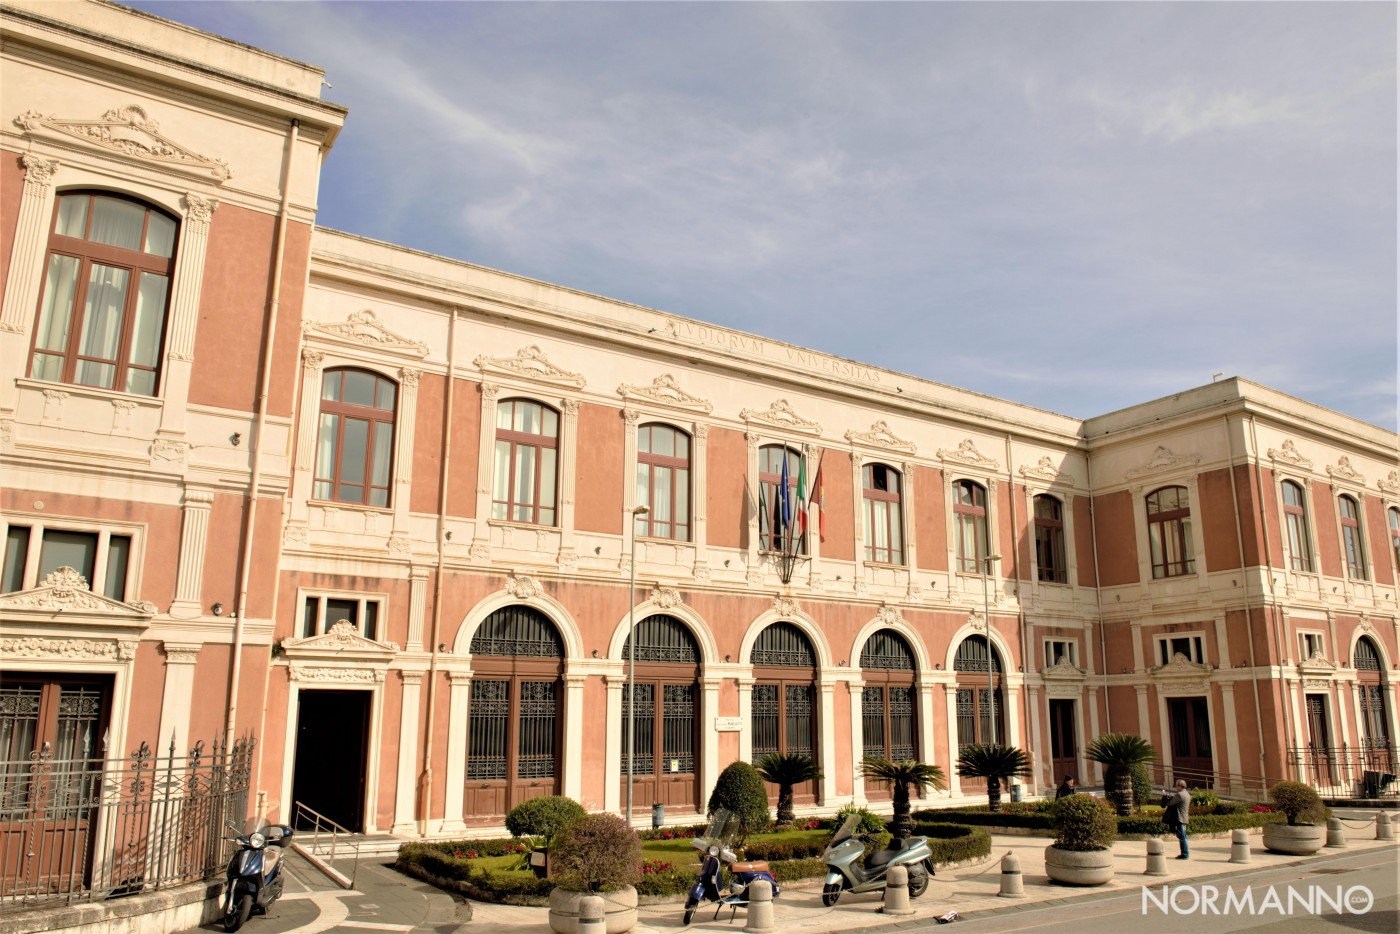 Foto dell'Università di Messina - unime